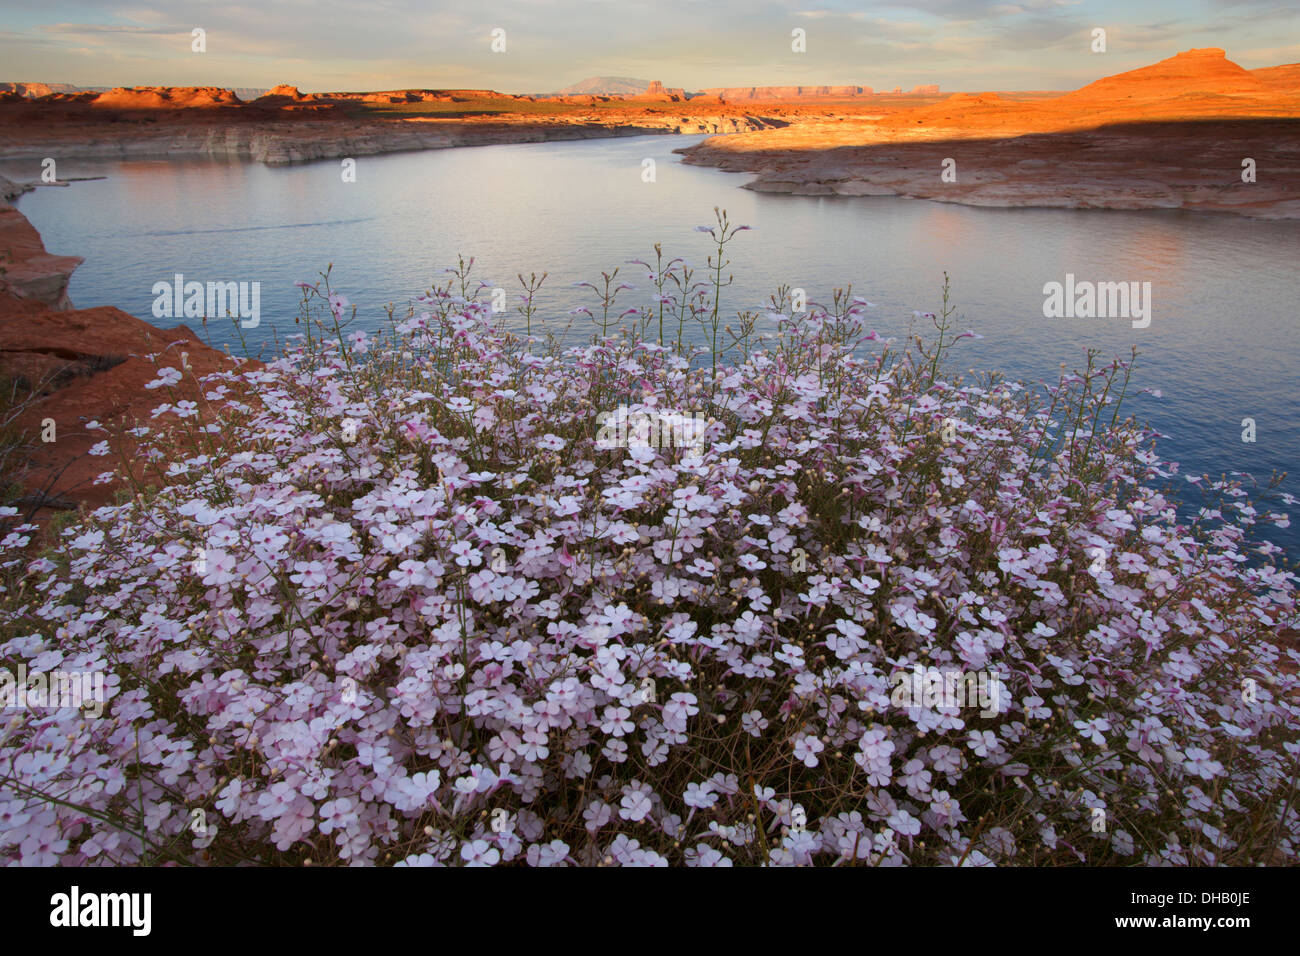 Lake Powell, Glen Canyon National Recreation Area, Arizona. - Stock Image